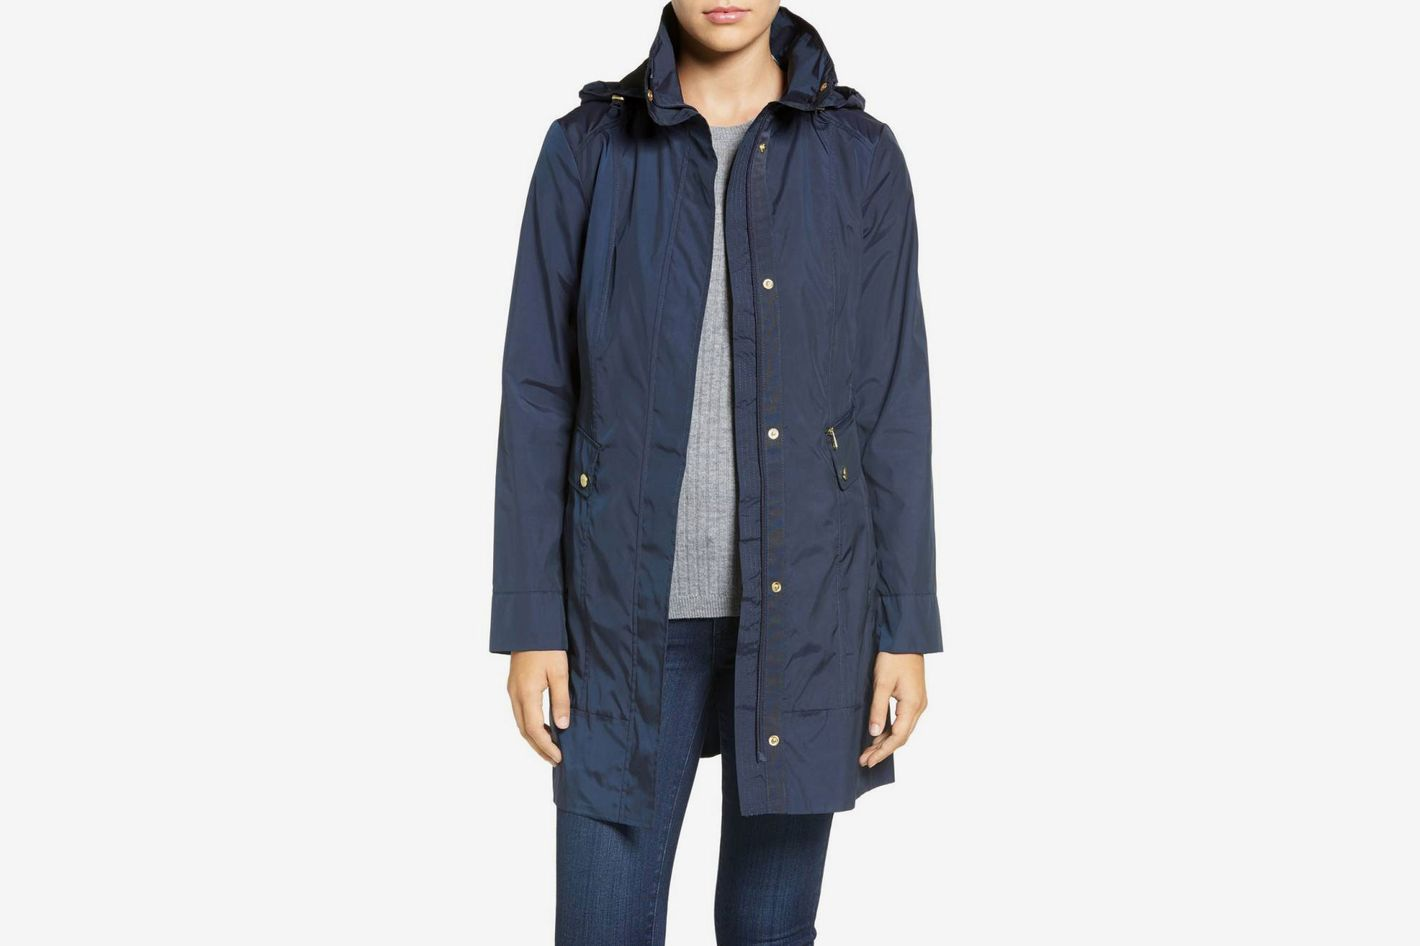 96aff1eb08265 Raincoat and Rain Jacket Sale 2018 - Stutterheim